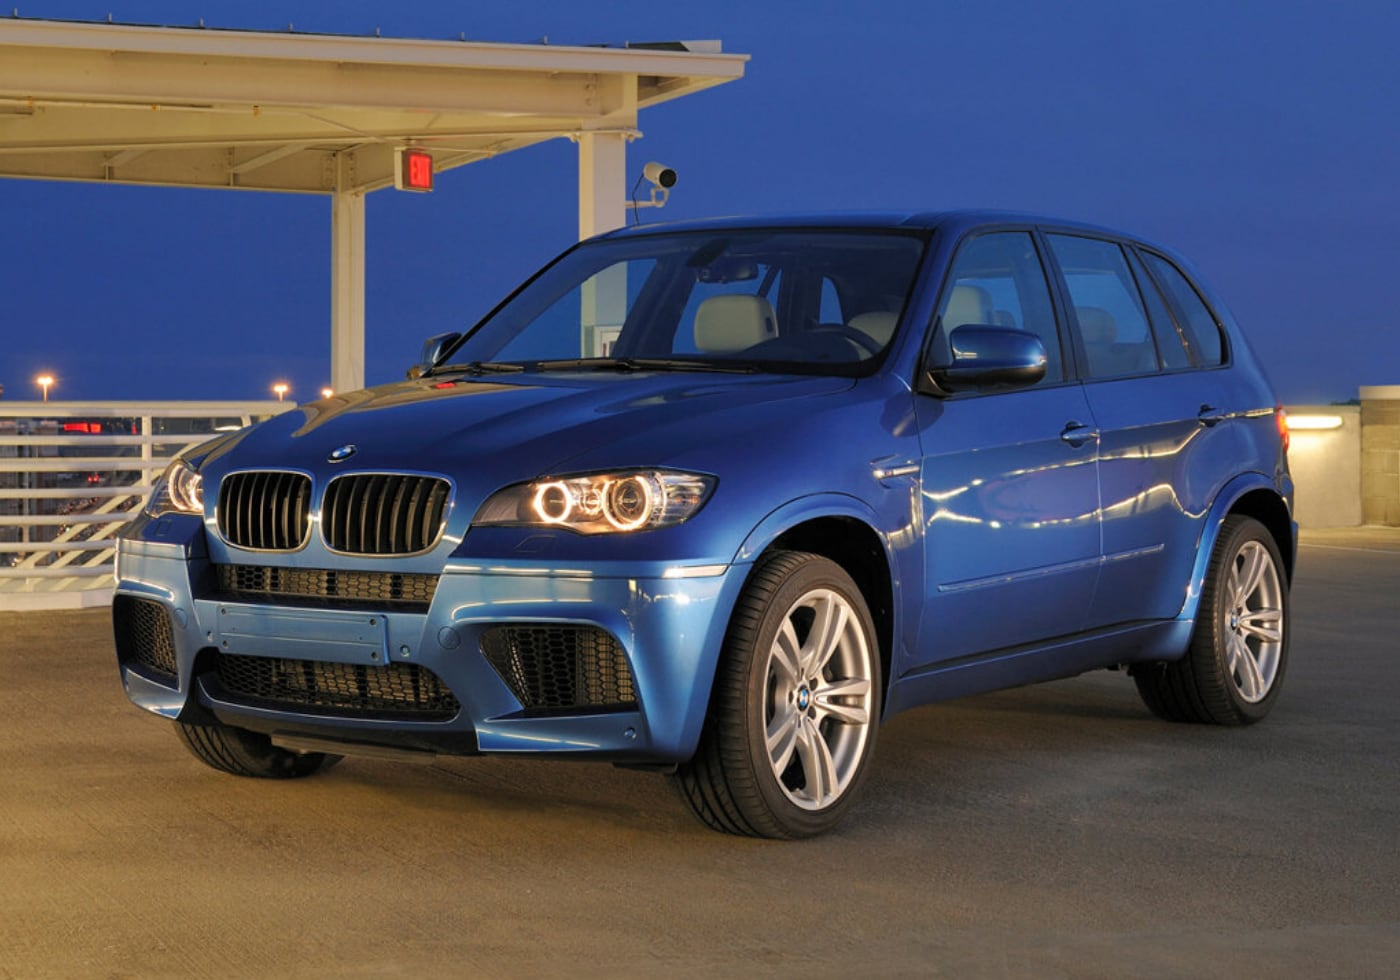 Used Blue 2010 BMW X5 parked on top of a parking building